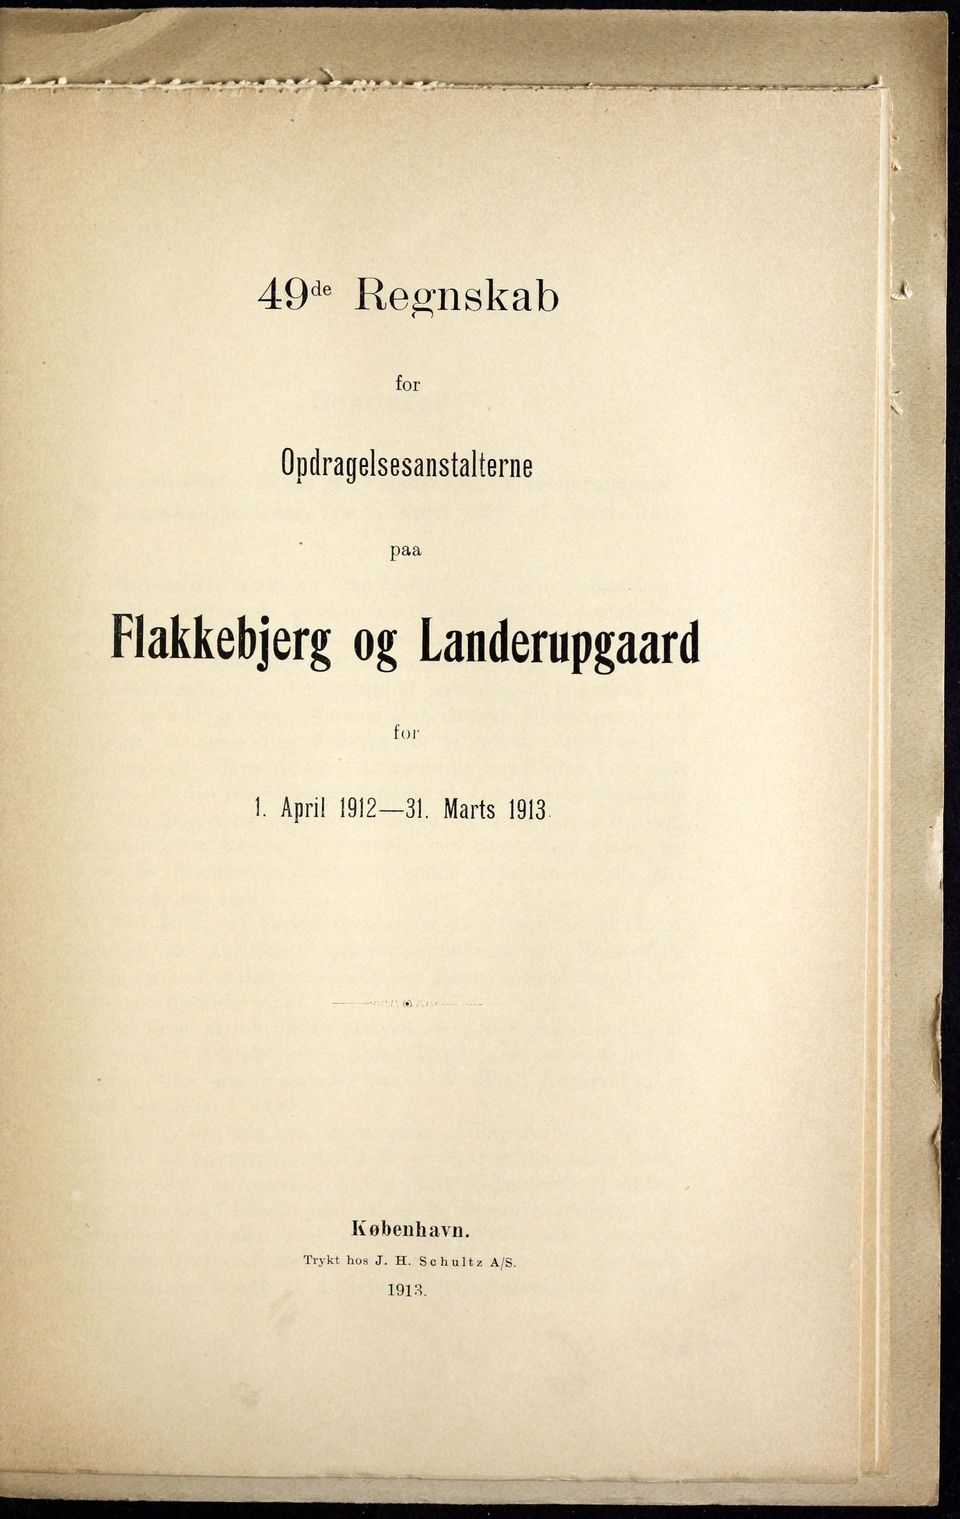 Landerupgaard for ]. April 1912 31.